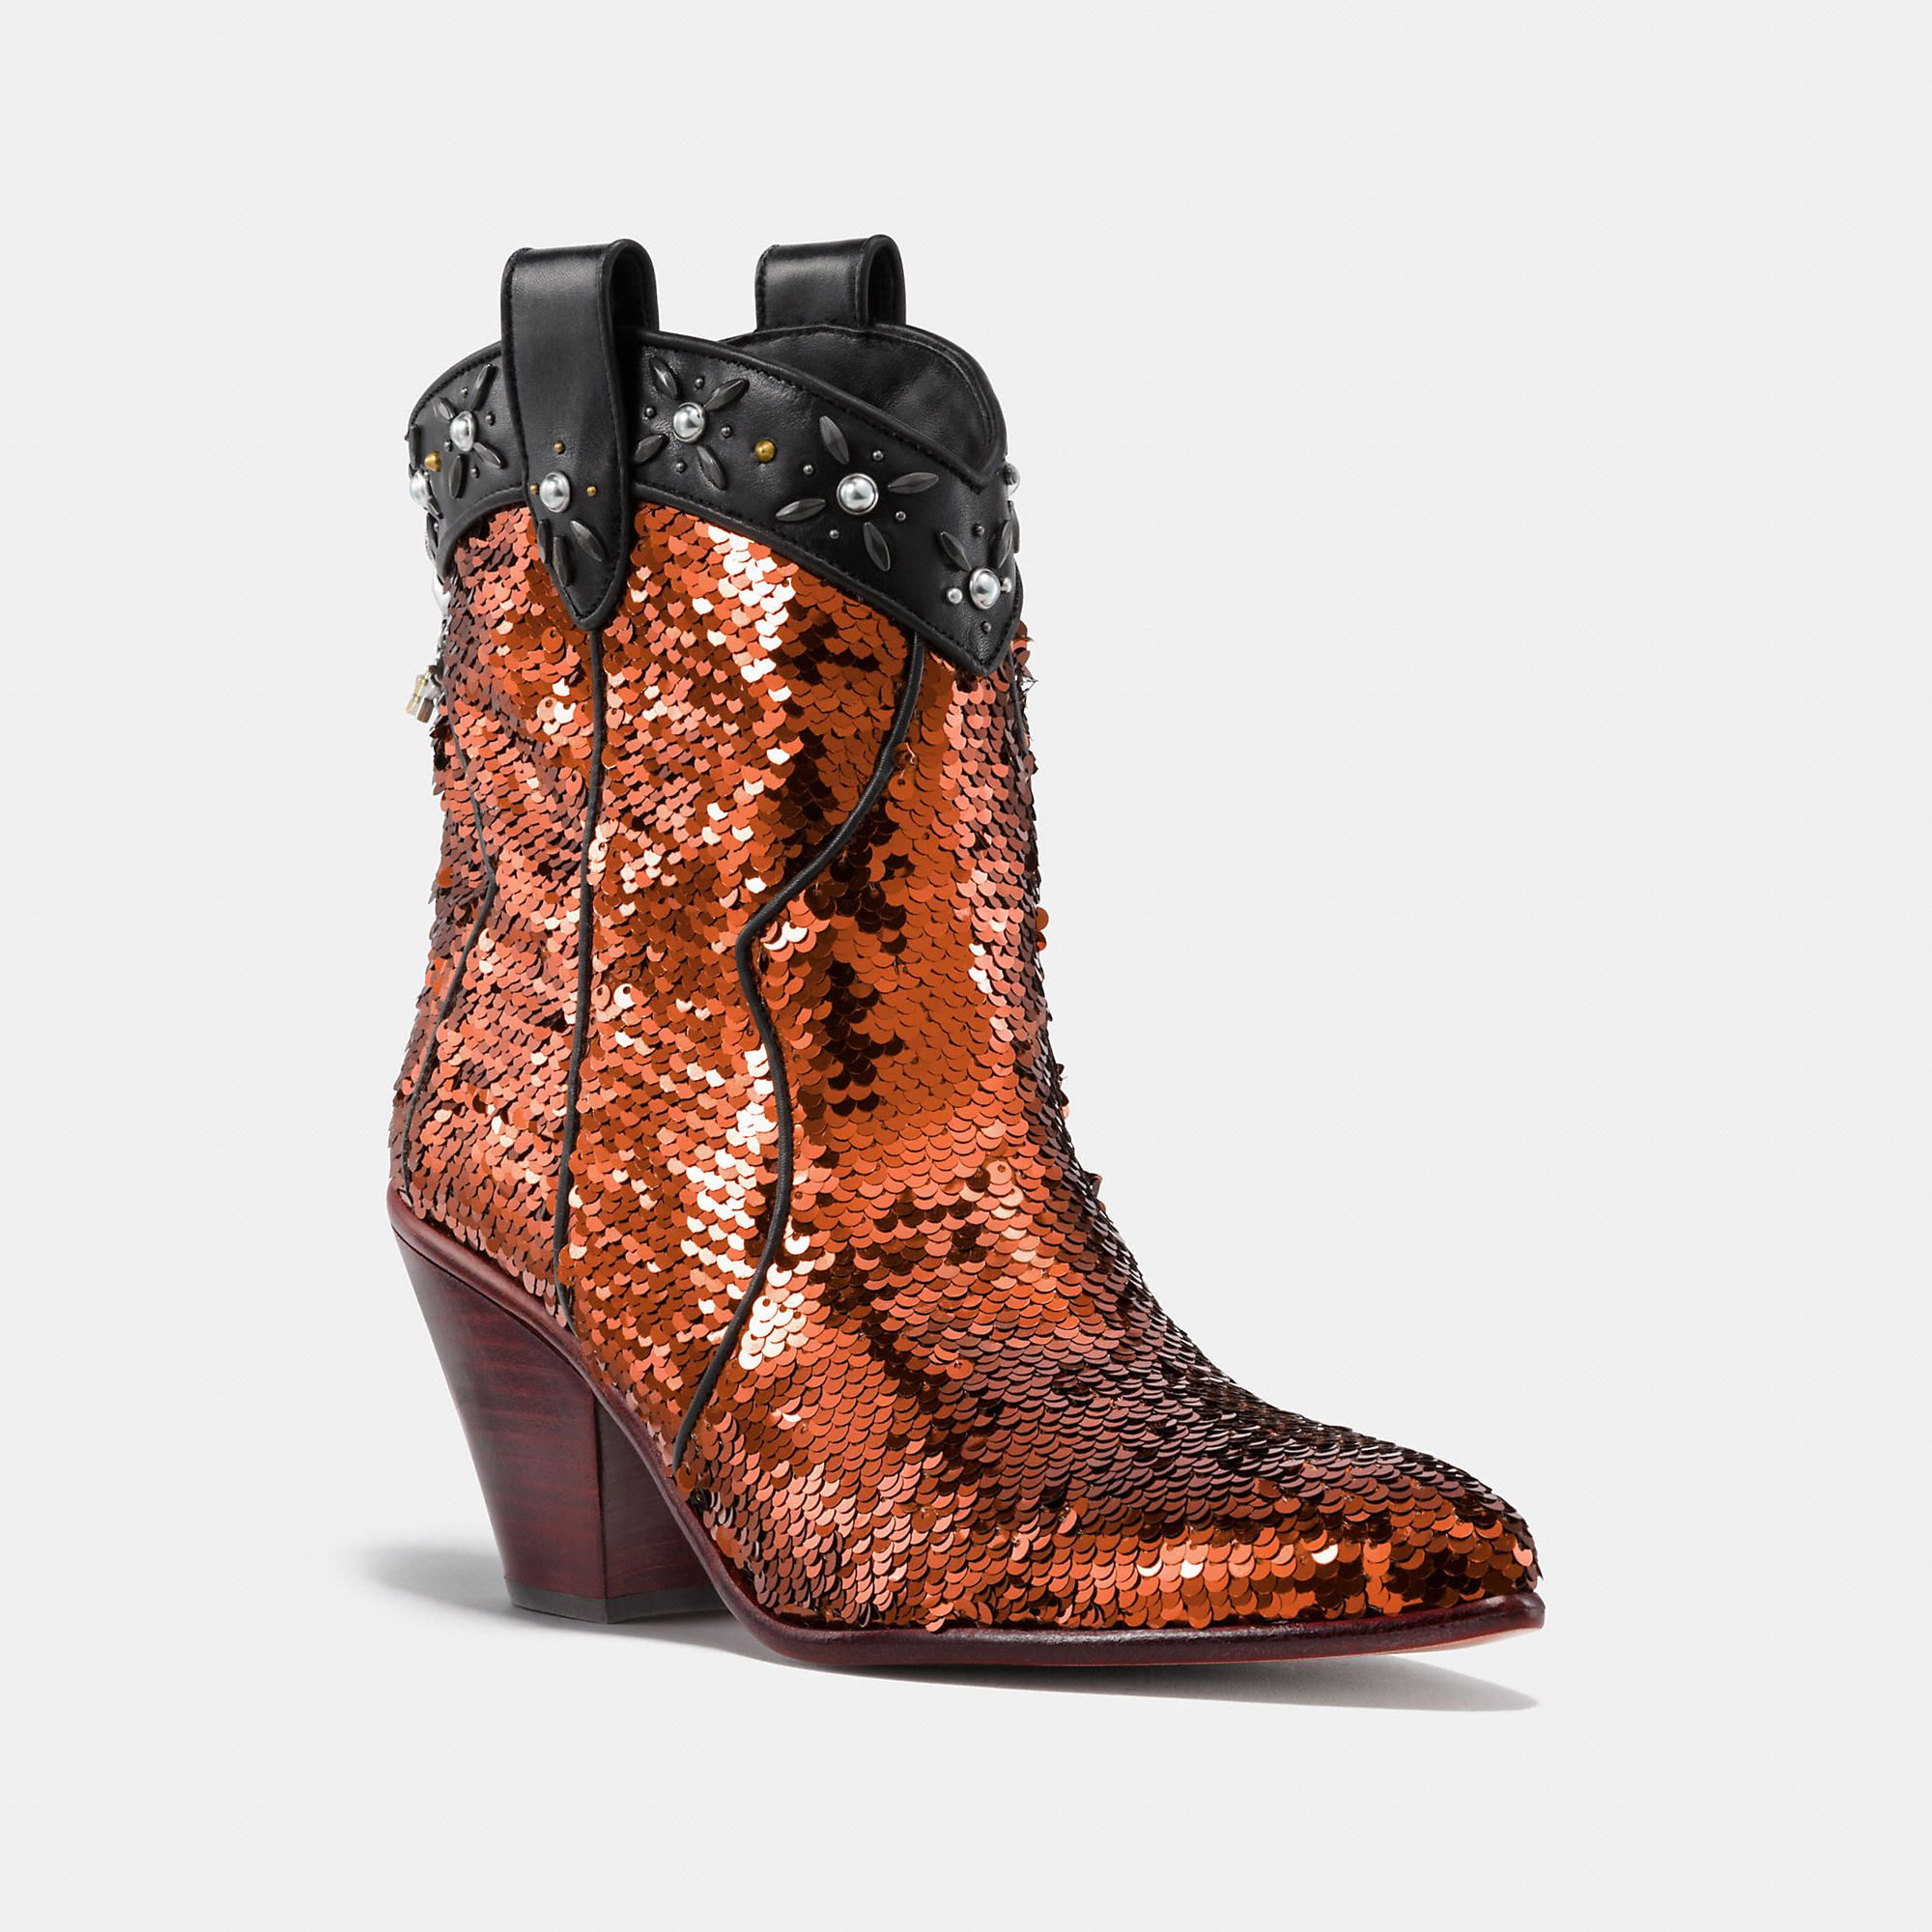 5520dd8f2b6 Western Bootie With Sequins   Products   Coach boots, Sequin shoes ...